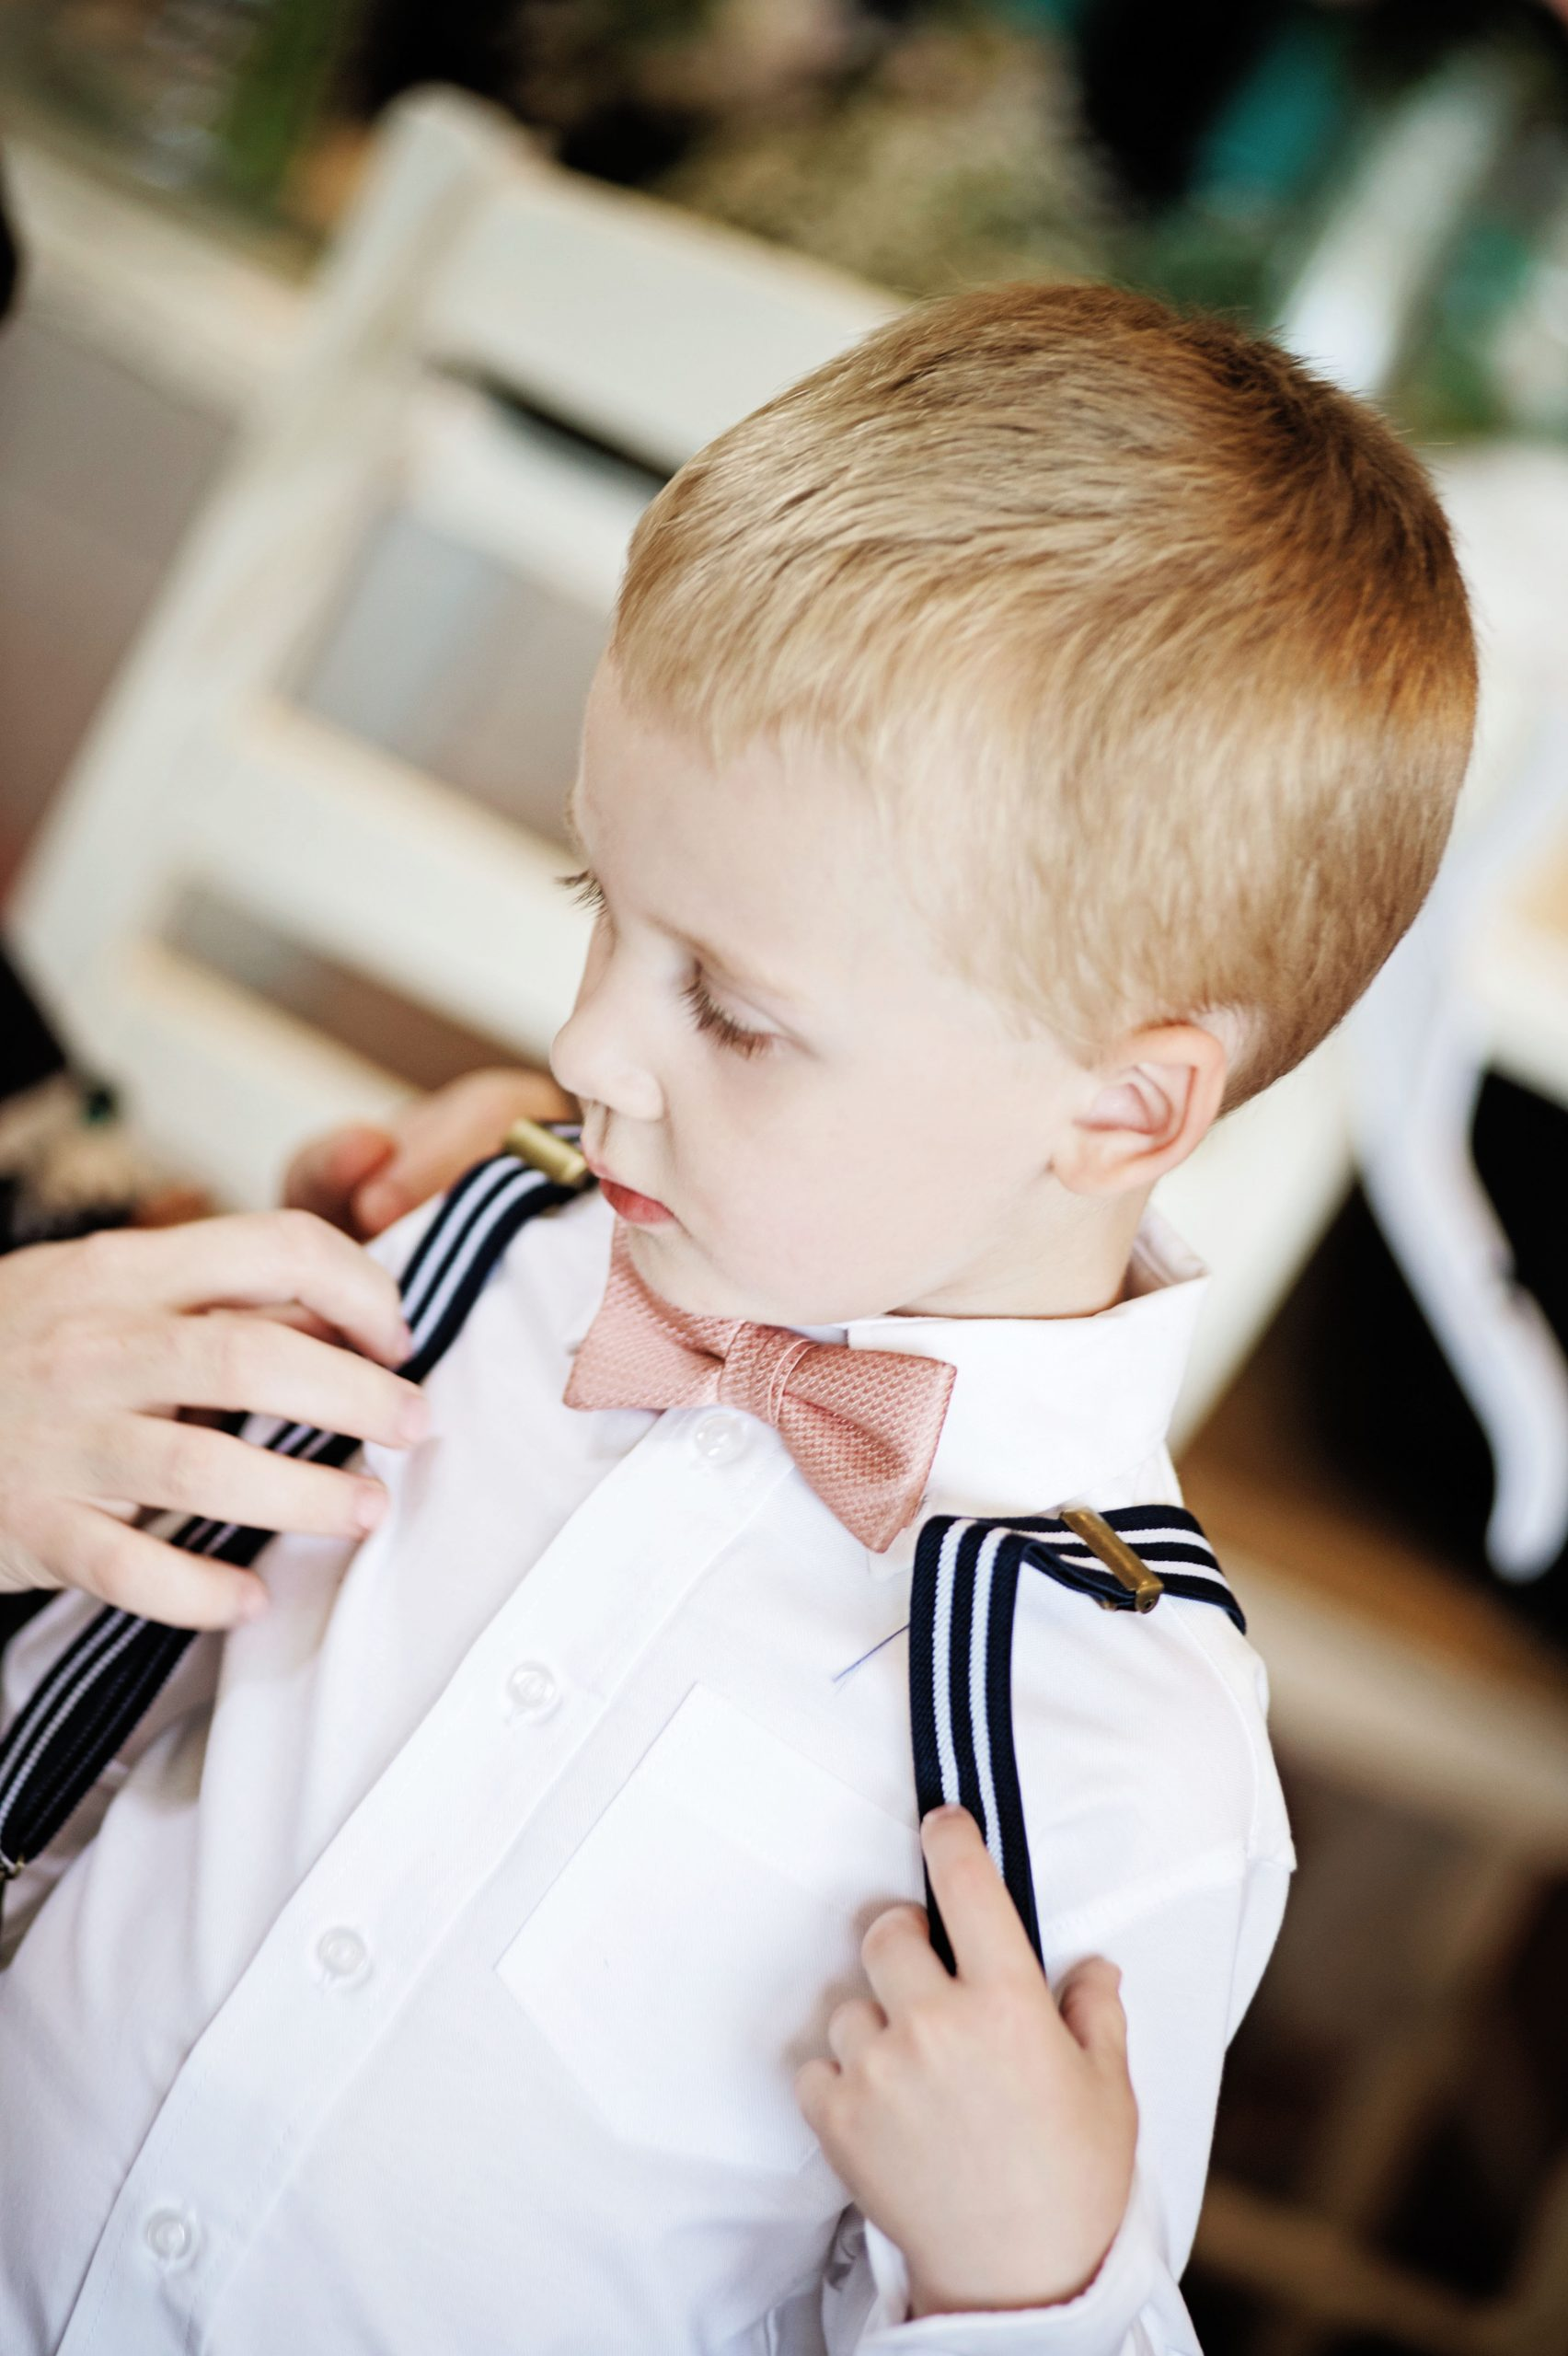 Ring bearer suites up for the isle at Lakeview Farms in York, PA compliments of Lovefusion Photography. Featured in Dream Weddings.